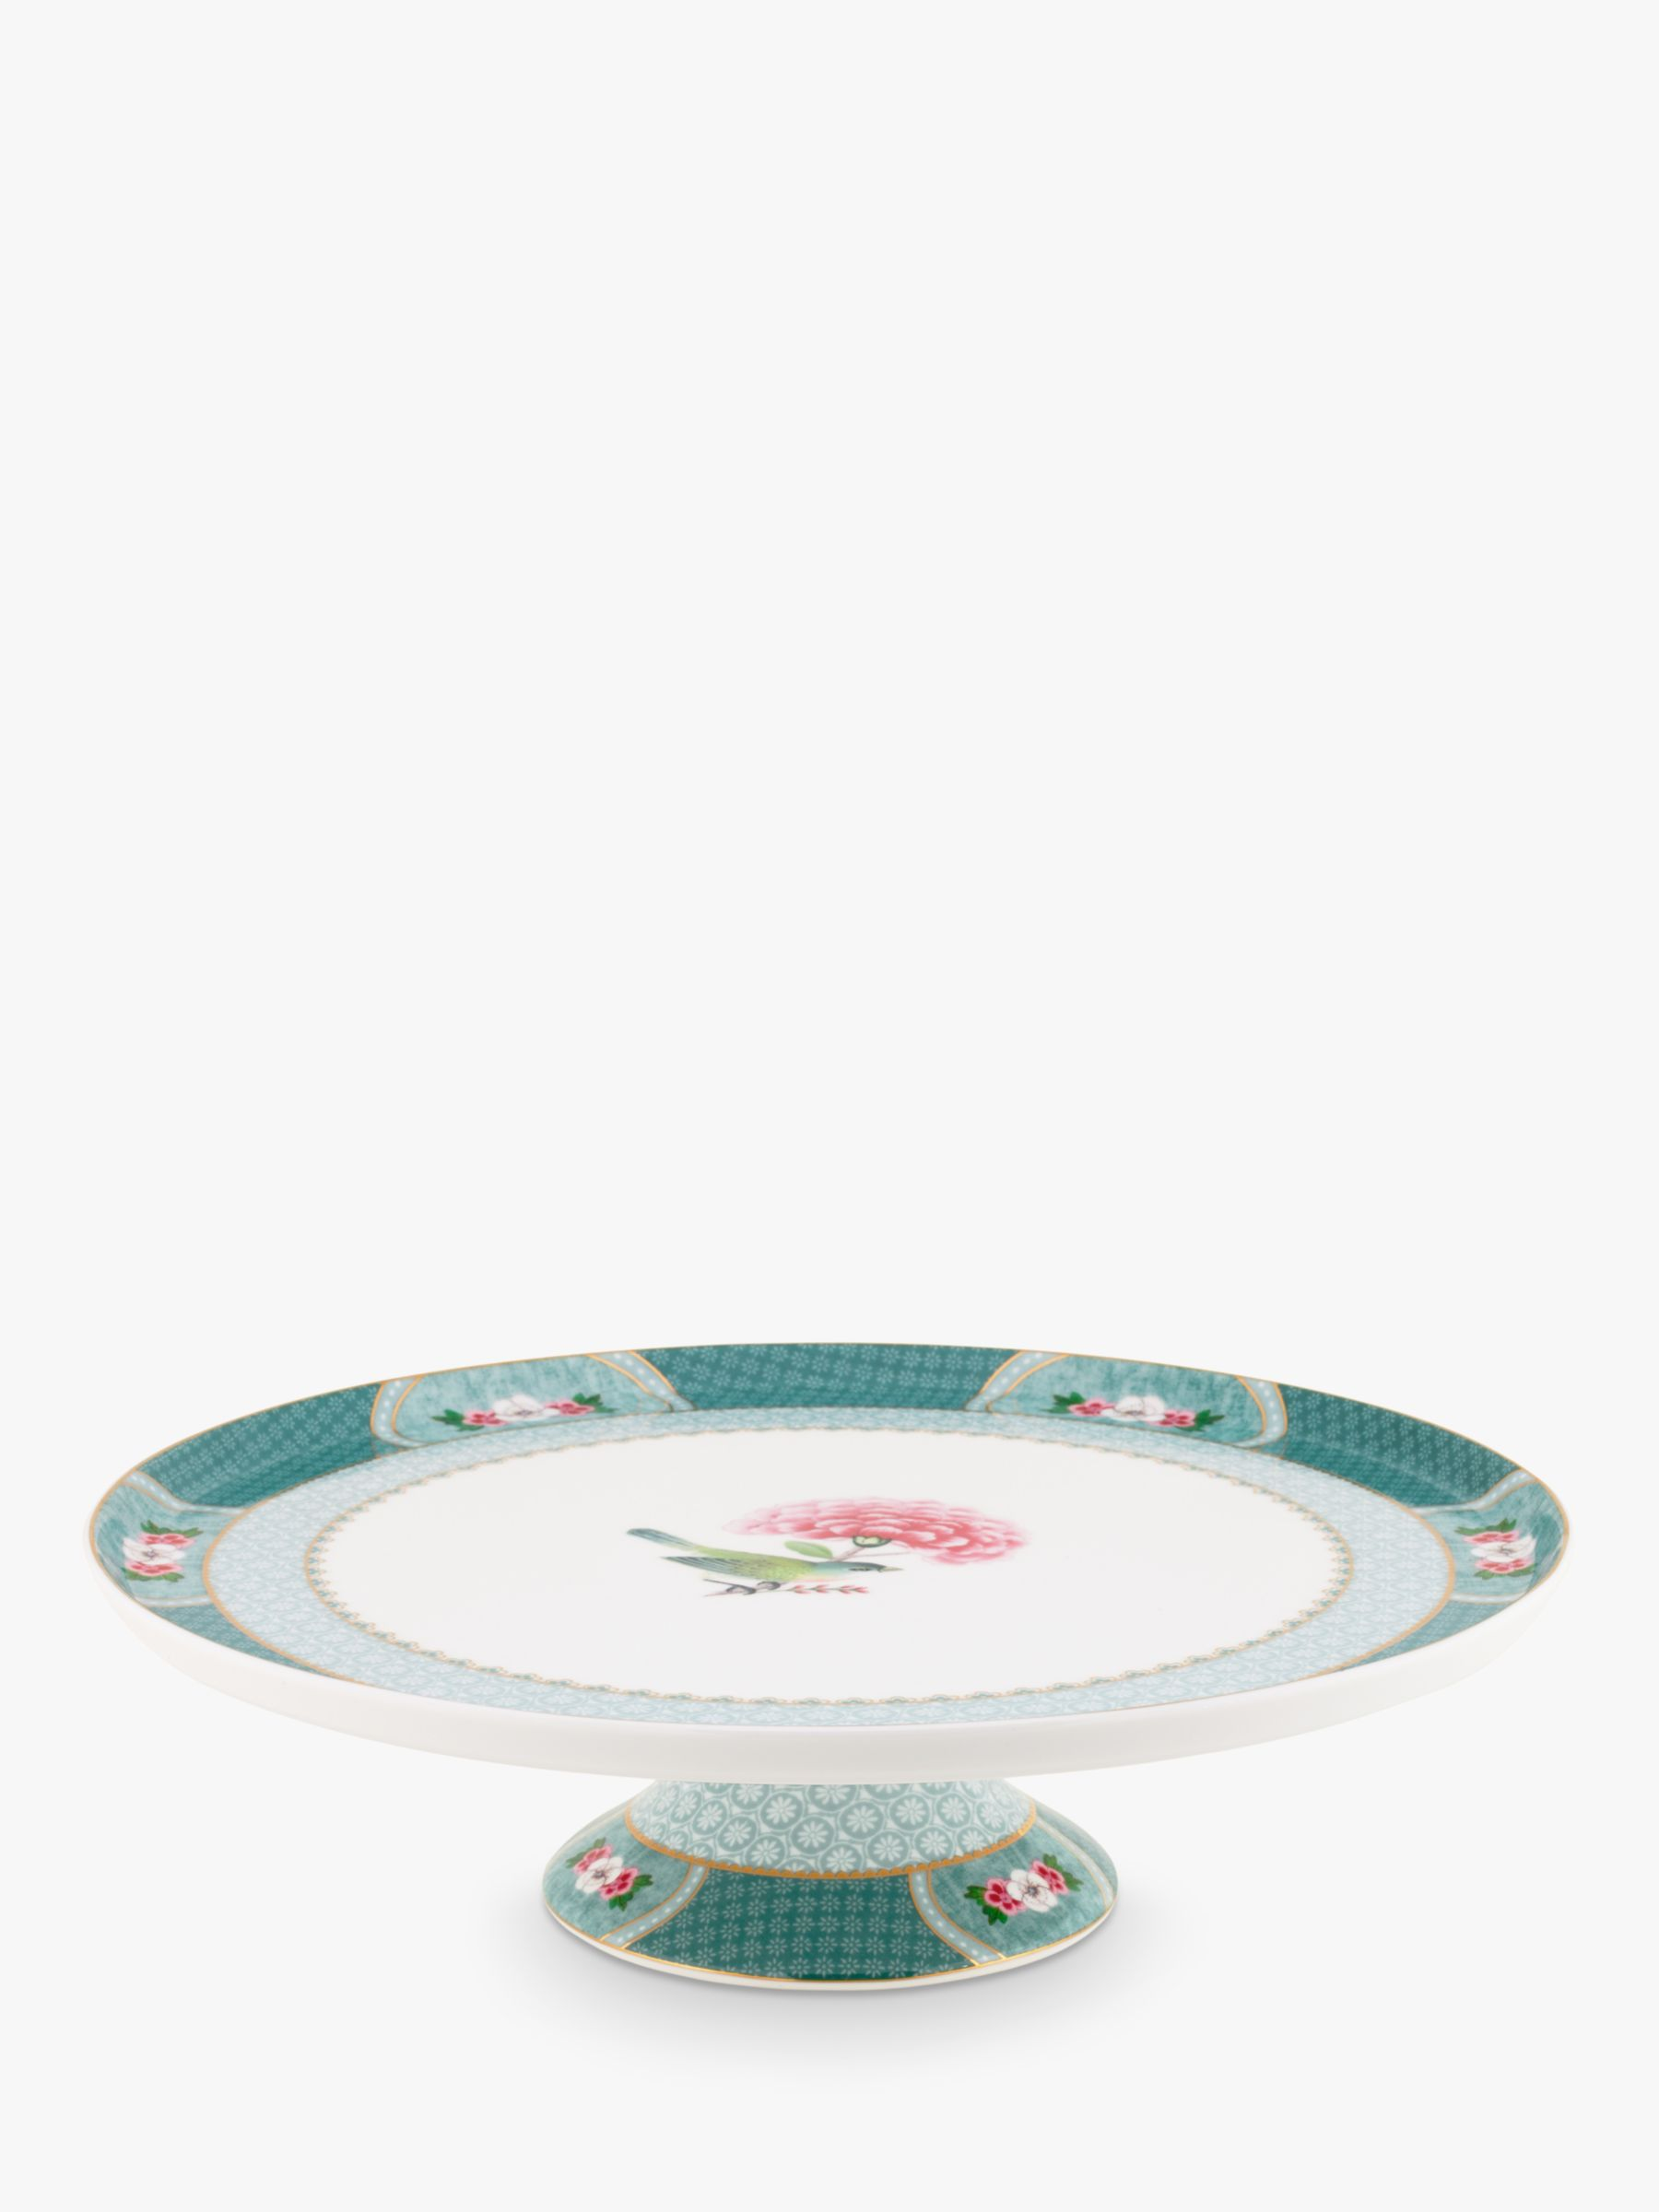 PiP Studio PiP Studio Blushing Birds Footed Cake Stand, 31cm, Blue